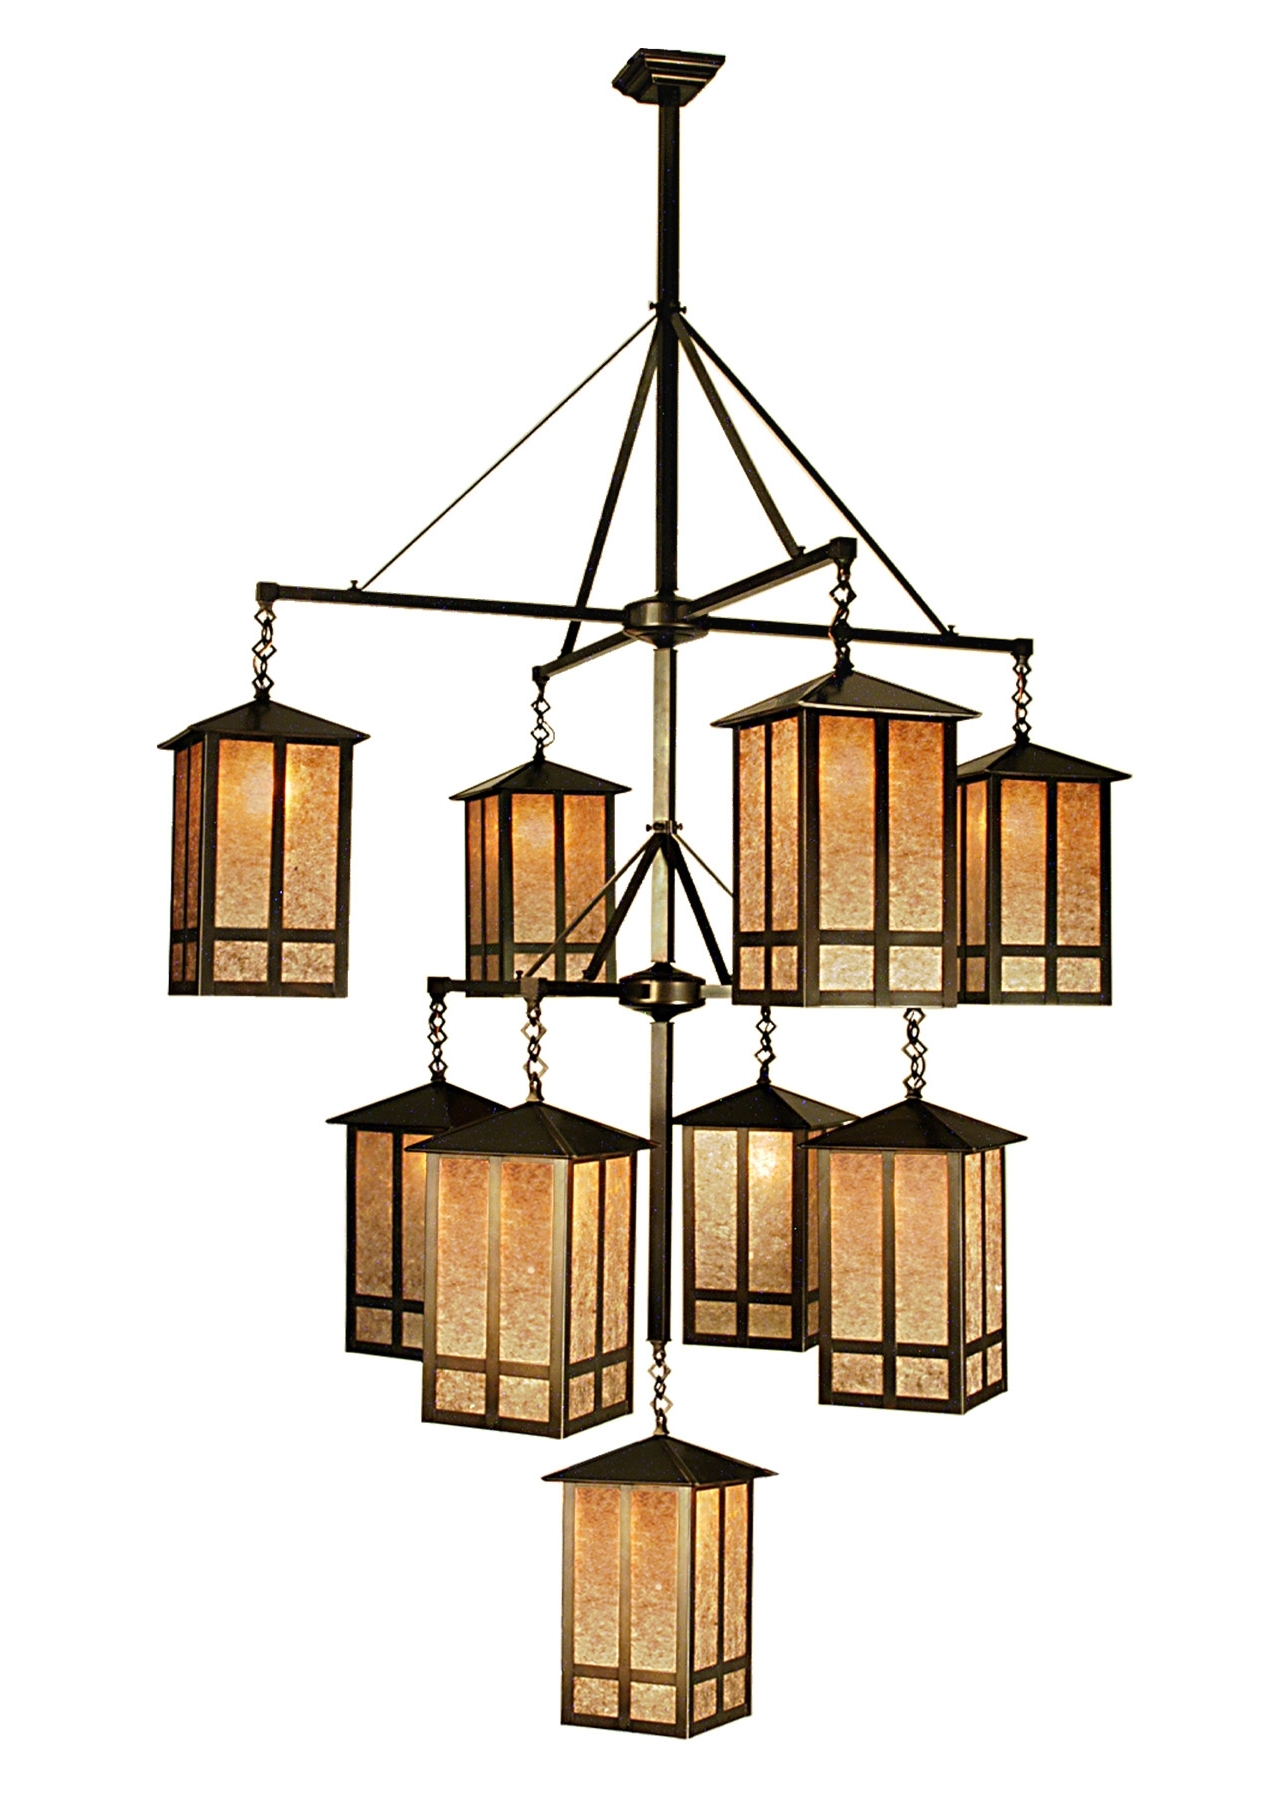 Indoor Lantern Chandelier pertaining to Famous Lantern Chandelier Lighting - Chandelier Designs